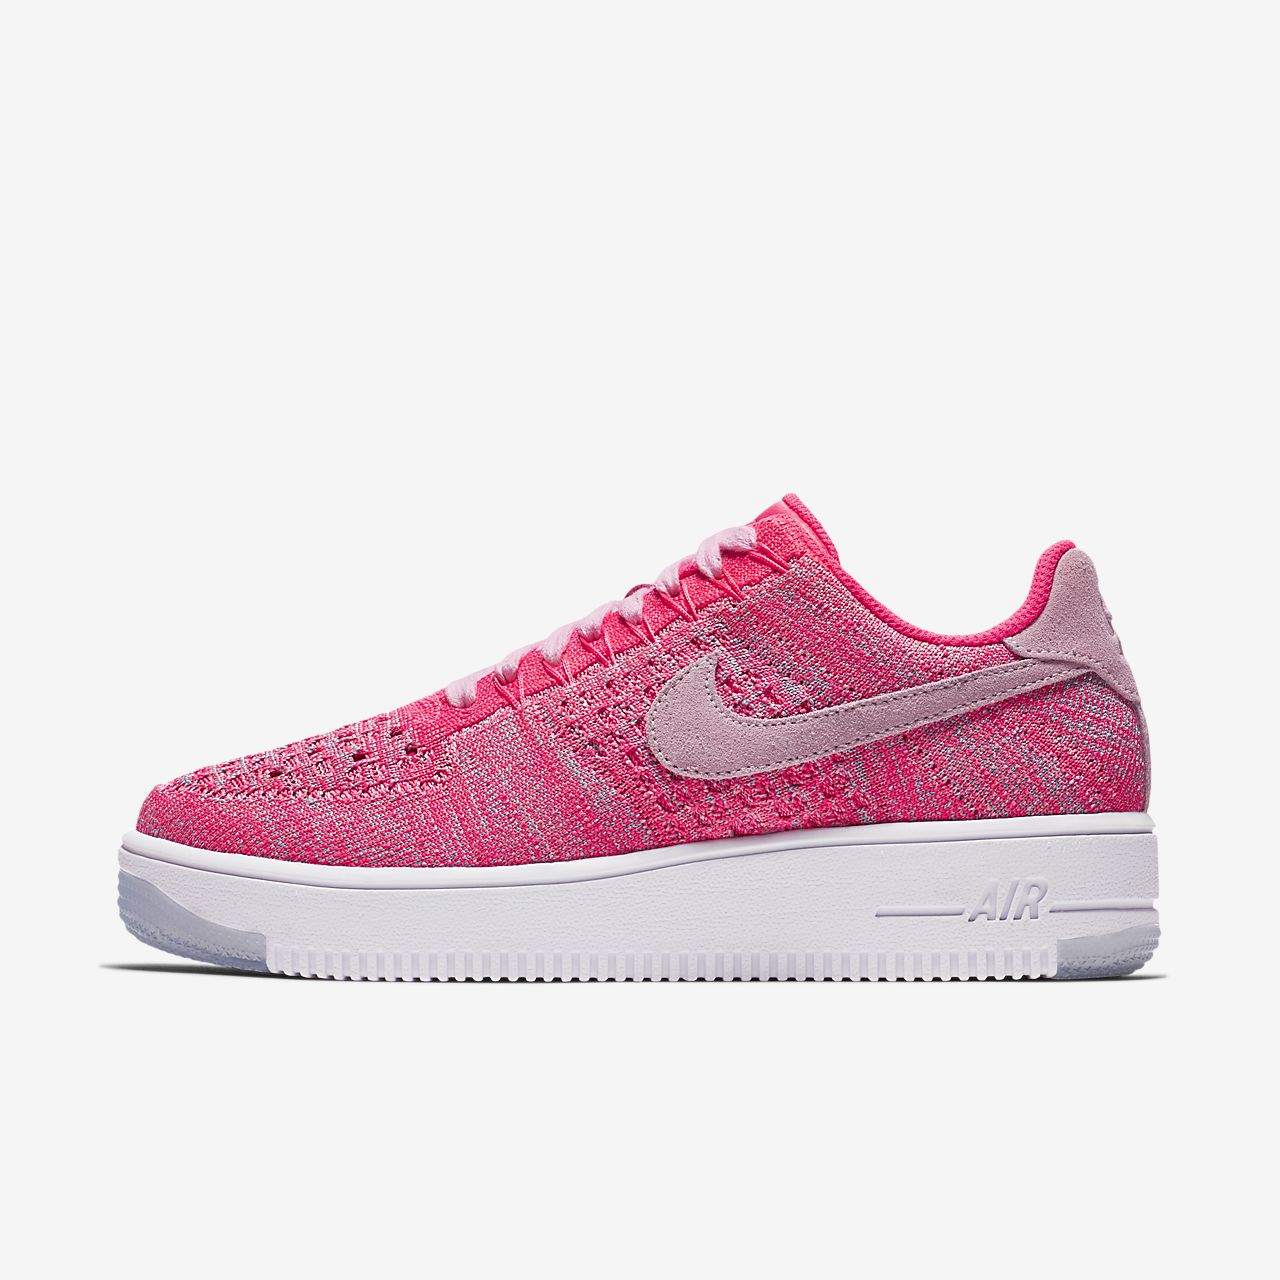 nike air force 1 low flyknit damskie